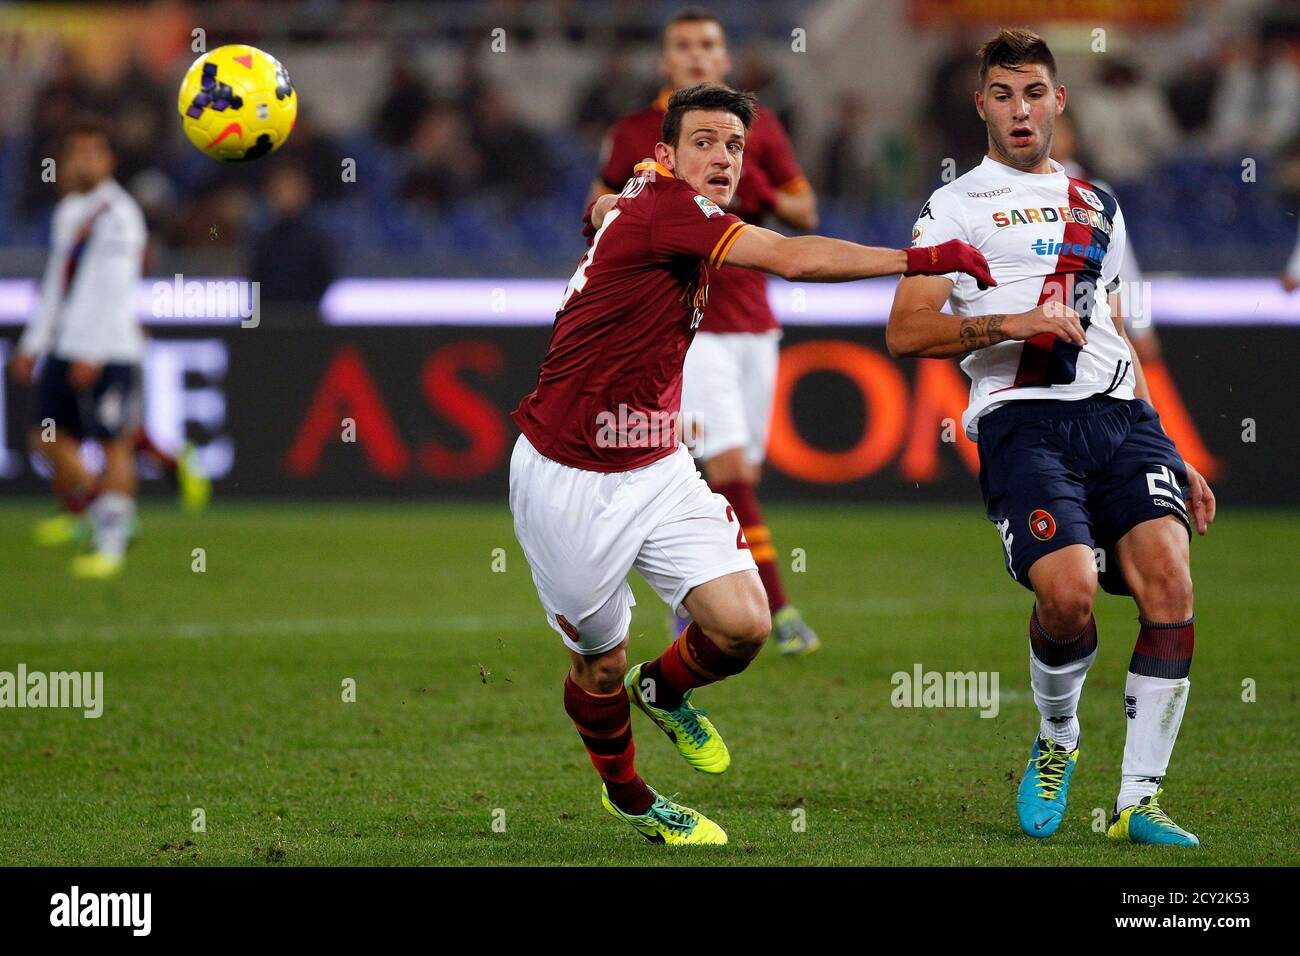 AS Roma's Alessandro Florenzi (L) and Cagliari's Nicola Murru fight for the ball during their Italian Serie A soccer match at the Olympic stadium in Rome November 25, 2013.  REUTERS/Giampiero Sposito (ITALY - Tags: SPORT SOCCER) Stock Photo